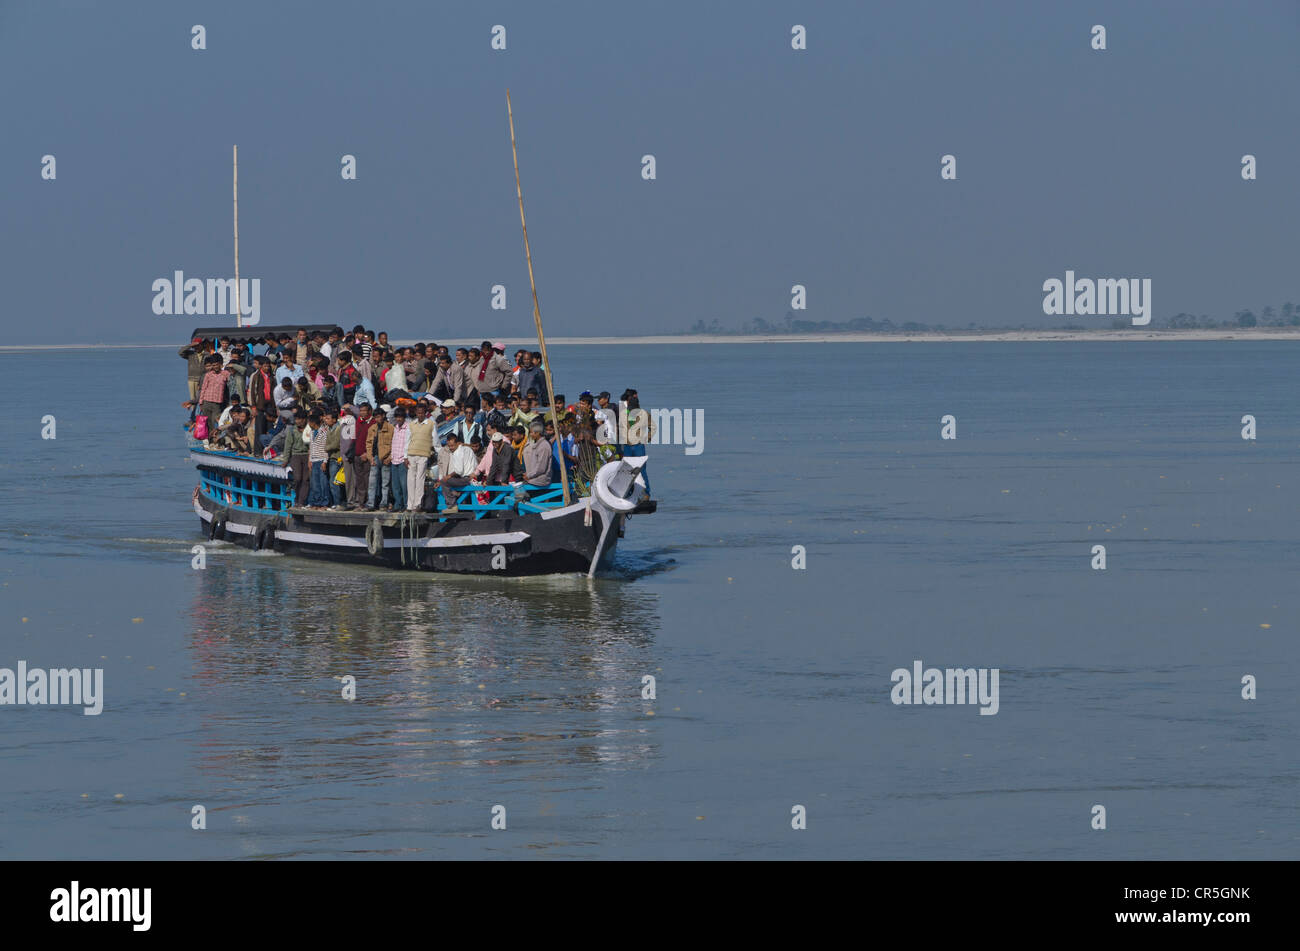 Rustic ferry-boat at Jorhat takes more than one hour to cross the mighty Brahmaputra River, India, Asia - Stock Image